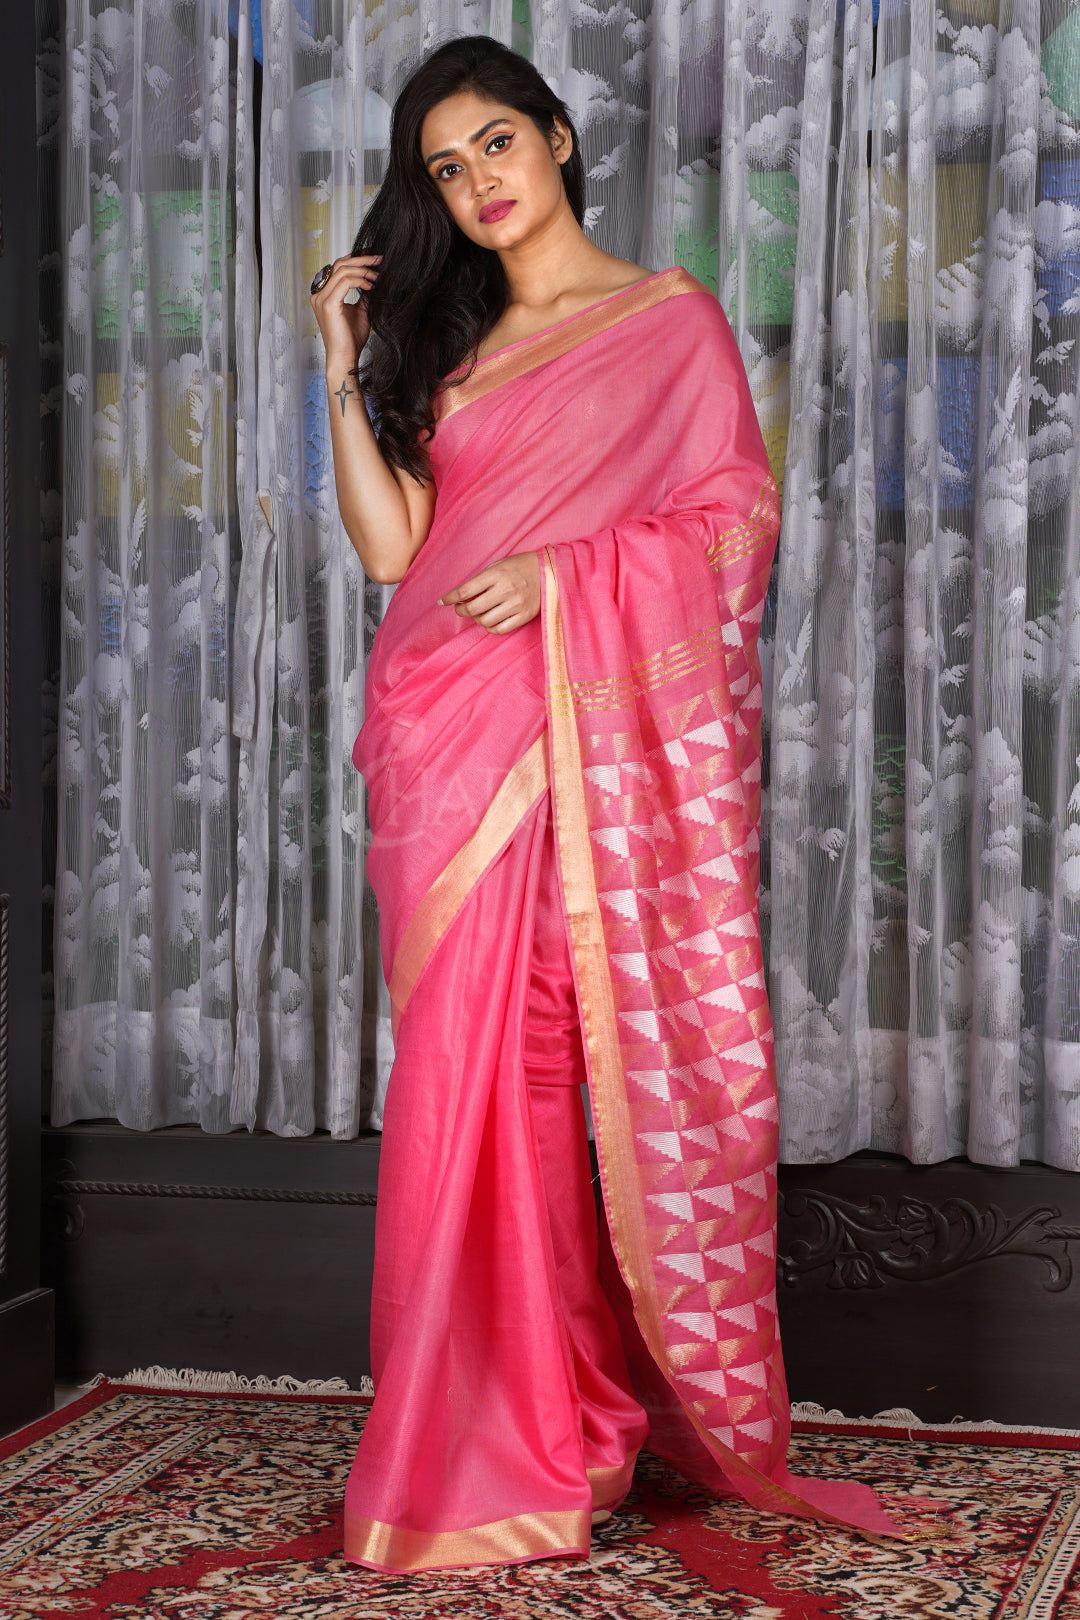 PINK BLENDED COTTON SAREE WITH GEOMETRIC PALLU